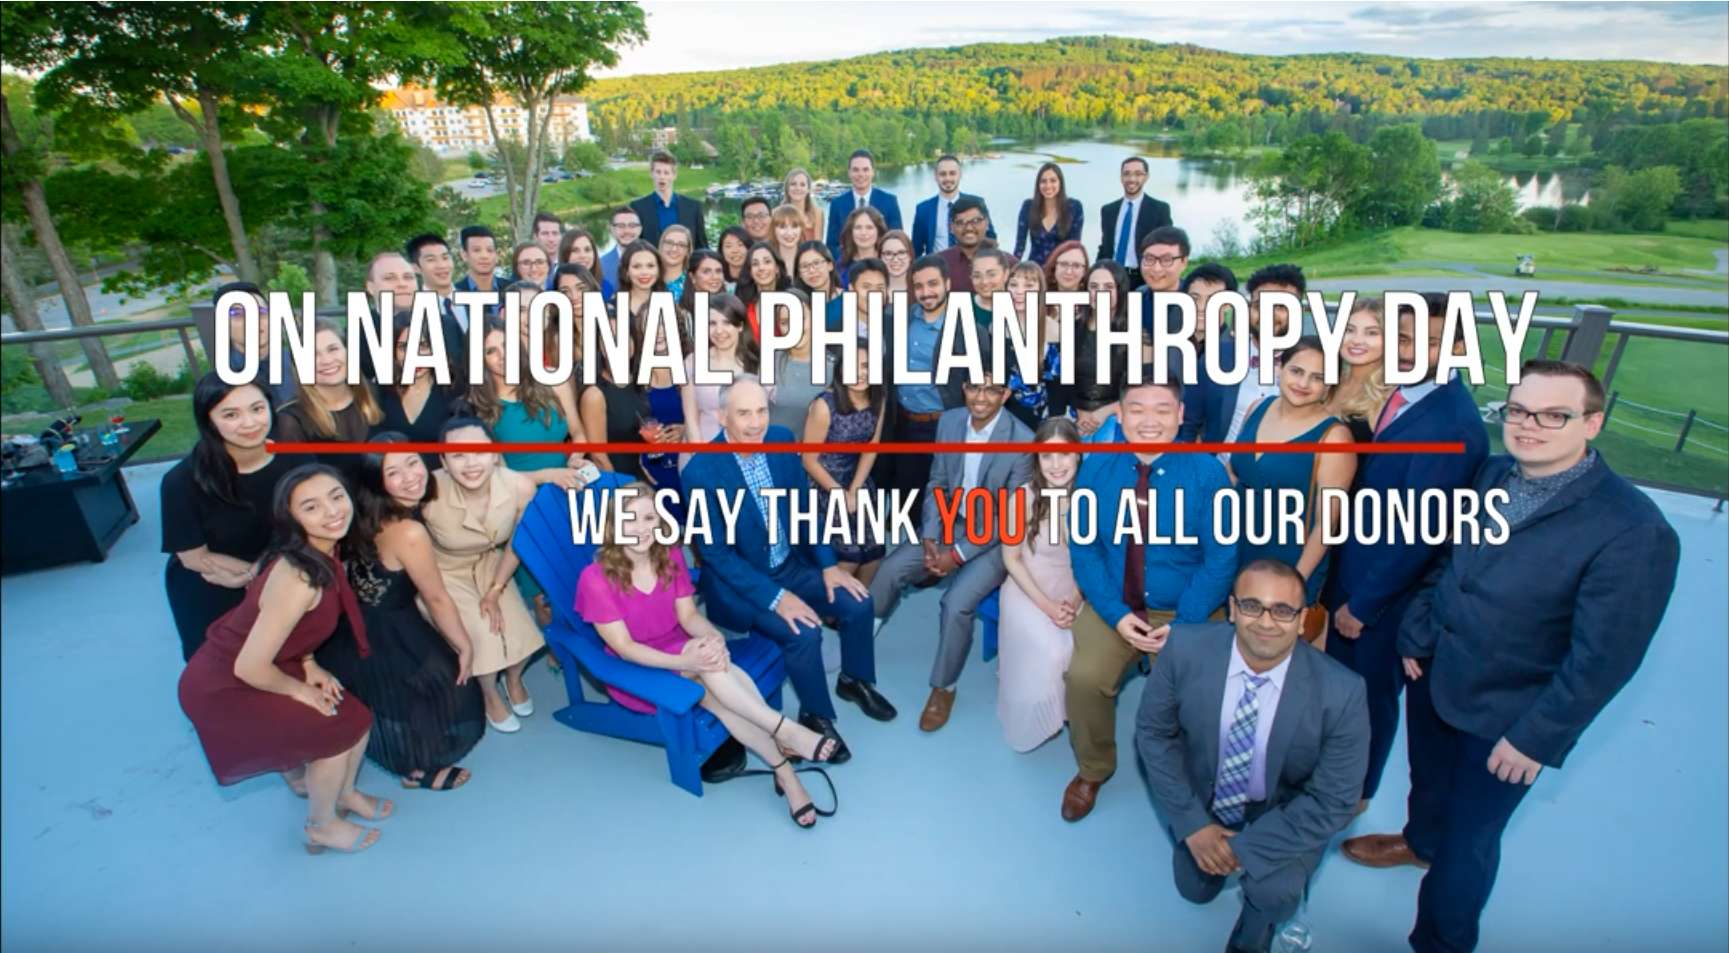 On national philanthropy day we say thank you to all our donors. Group of smiling students at conference.